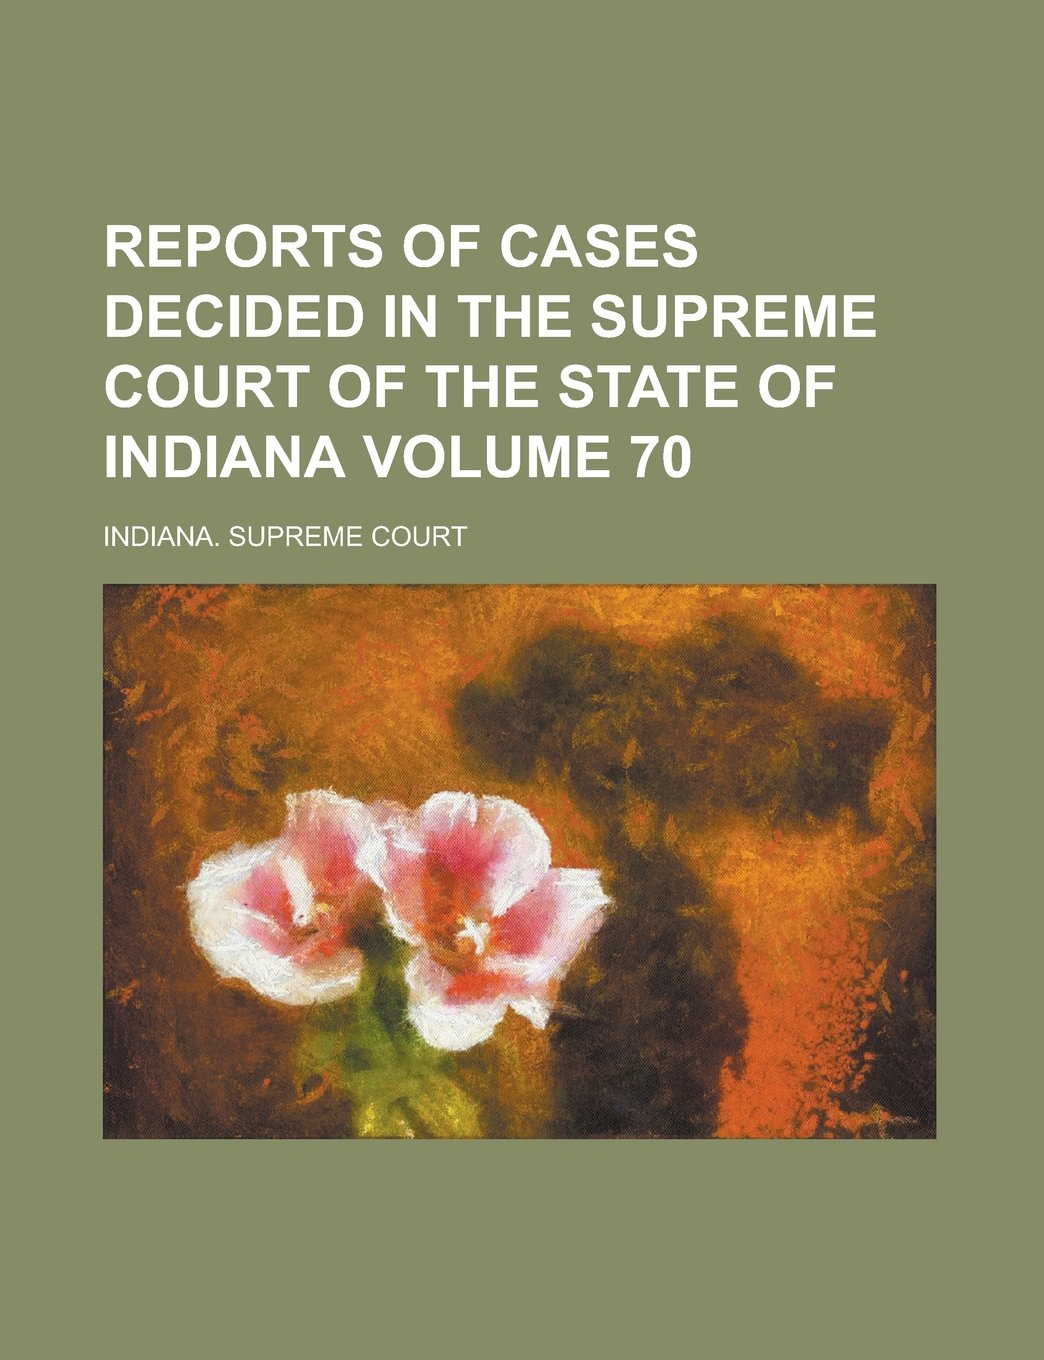 Reports of Cases Decided in the Supreme Court of the State of Indiana Volume 70 pdf